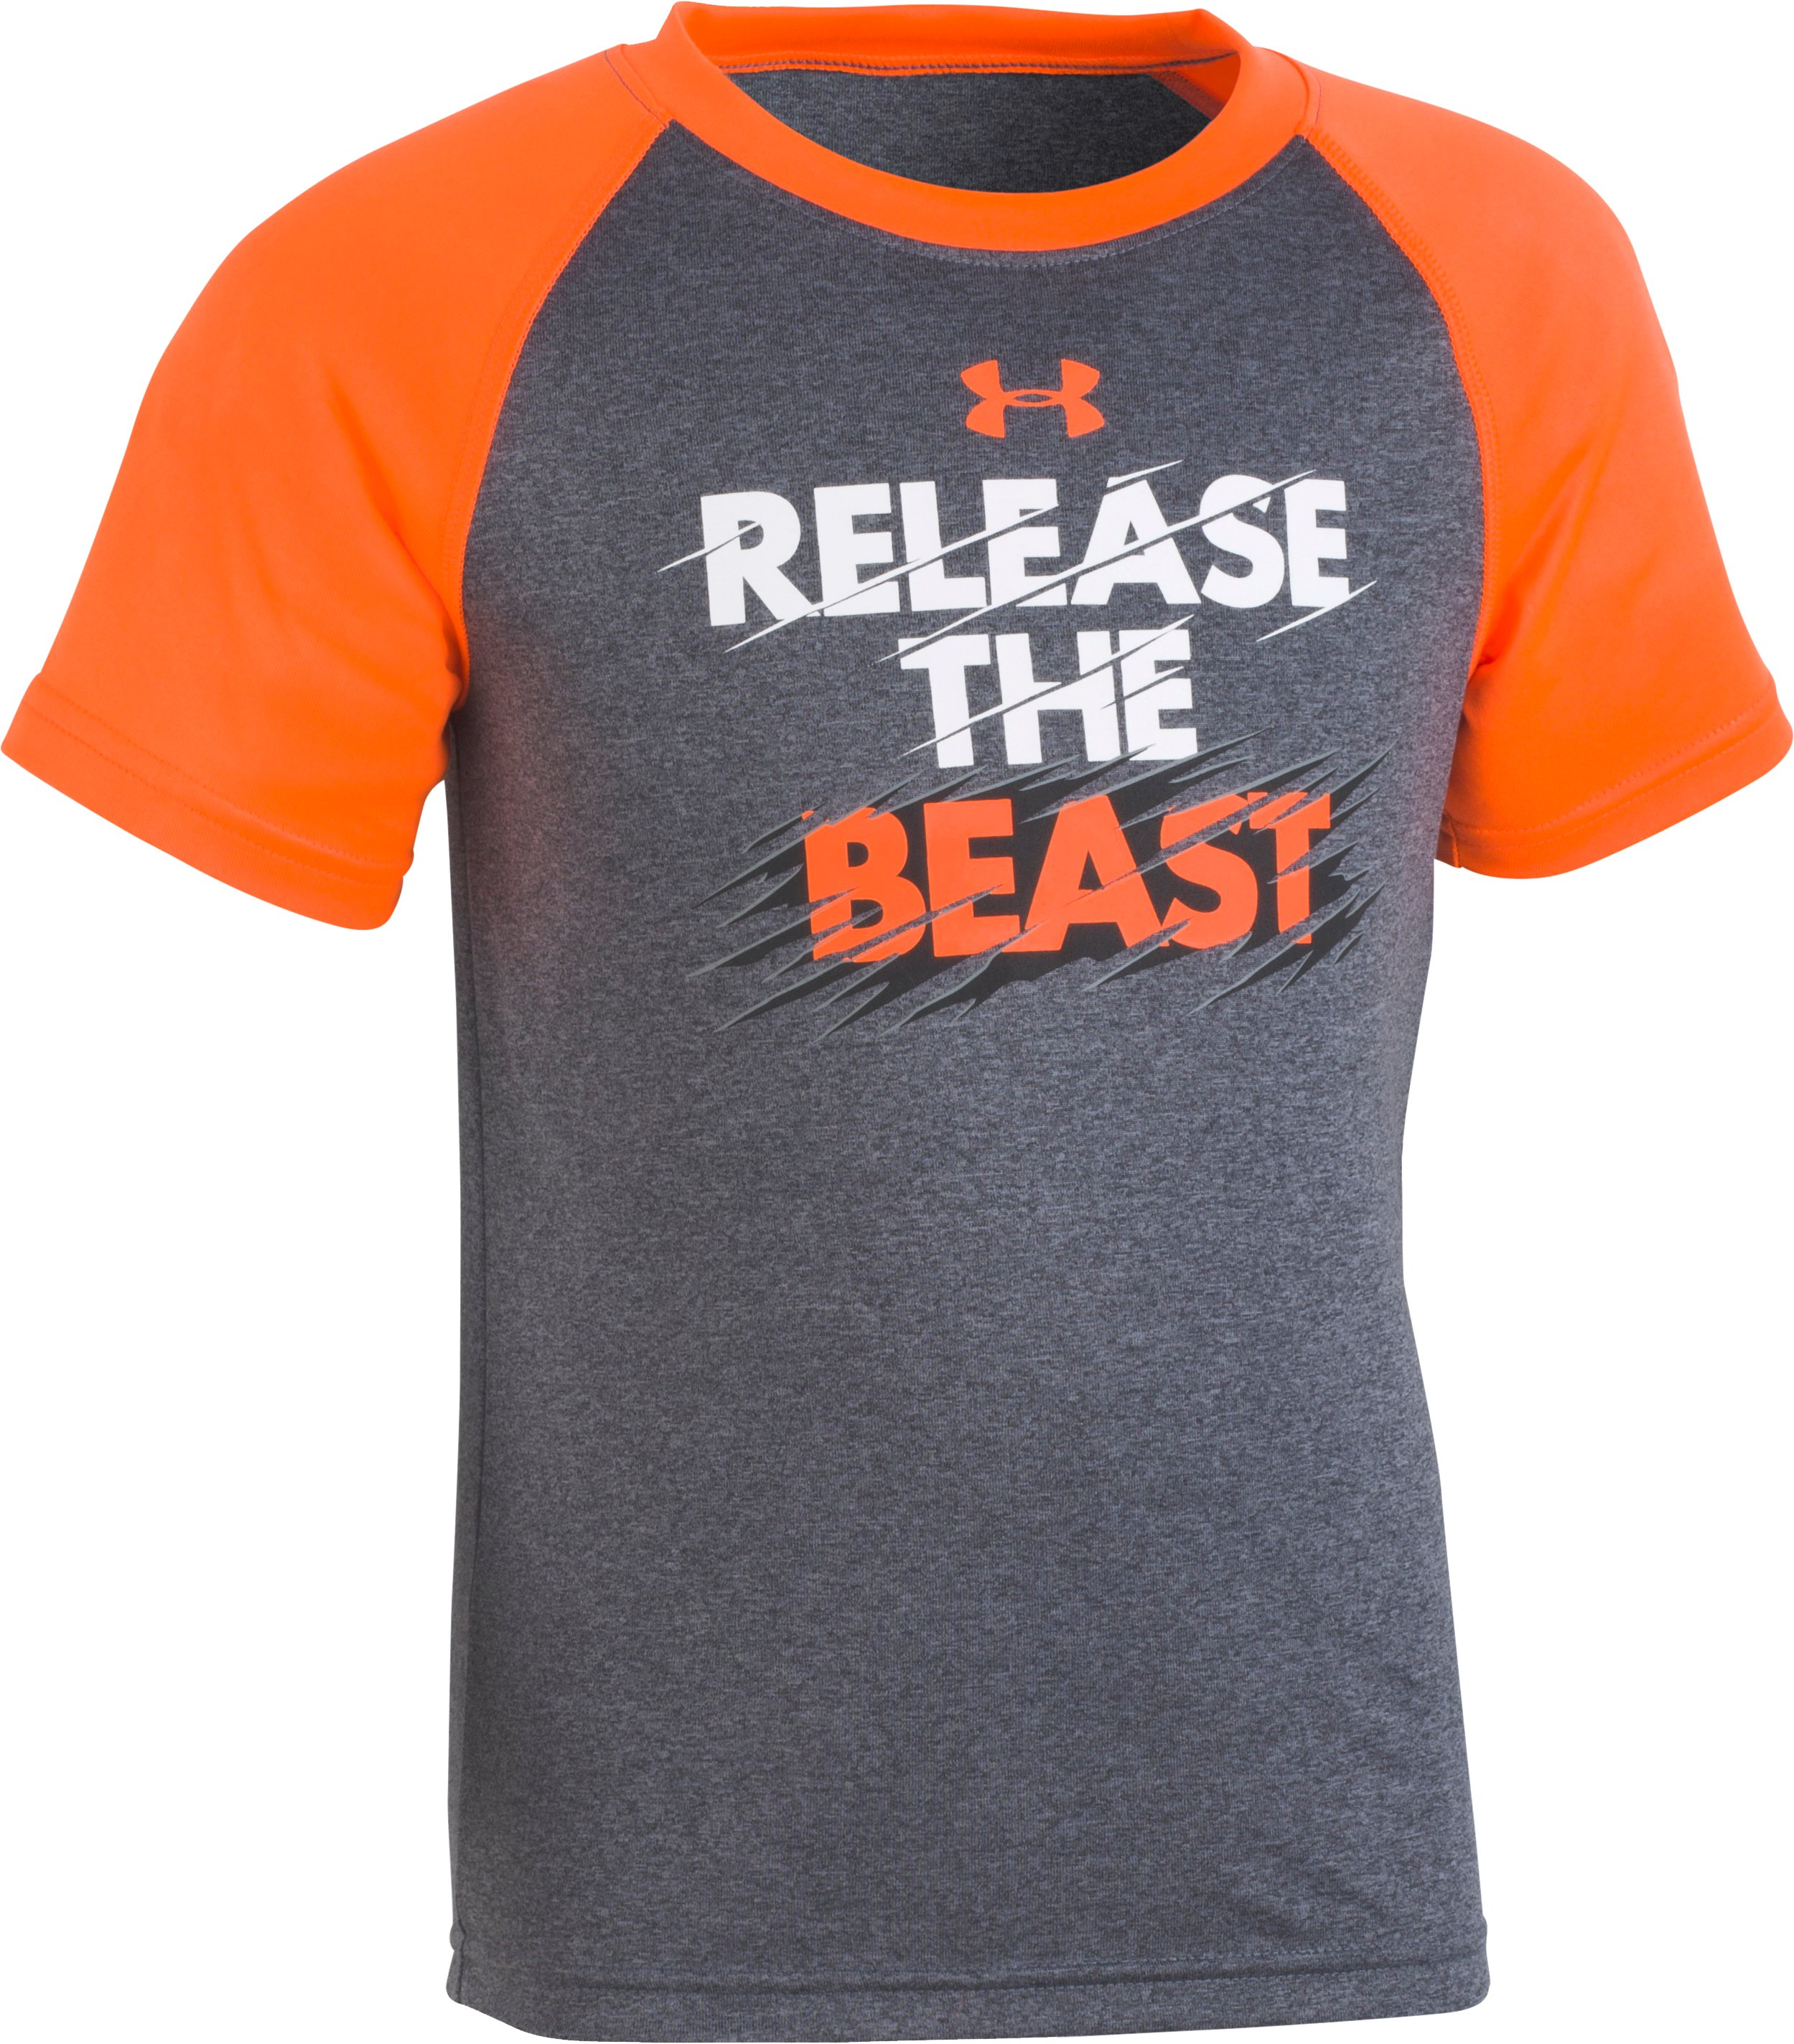 Boys' Toddler UA Release The Beast T-Shirt , Charcoal Medium Heather, Laydown